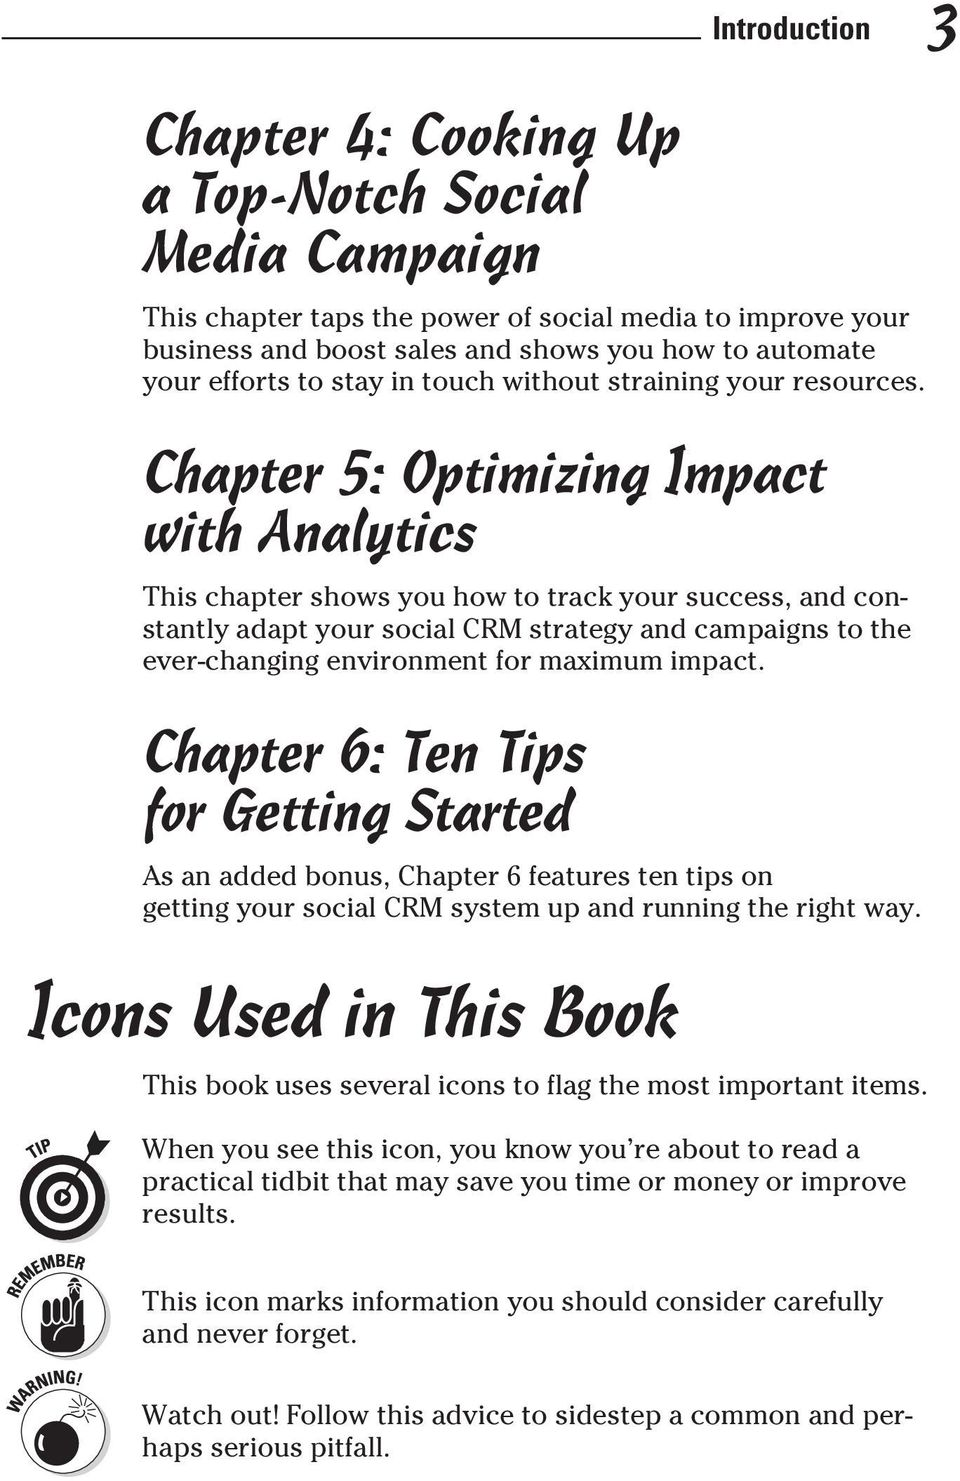 Chapter 5: Optimizing Impact with Analytics This chapter shows you how to track your success, and constantly adapt your social CRM strategy and campaigns to the ever-changing environment for maximum